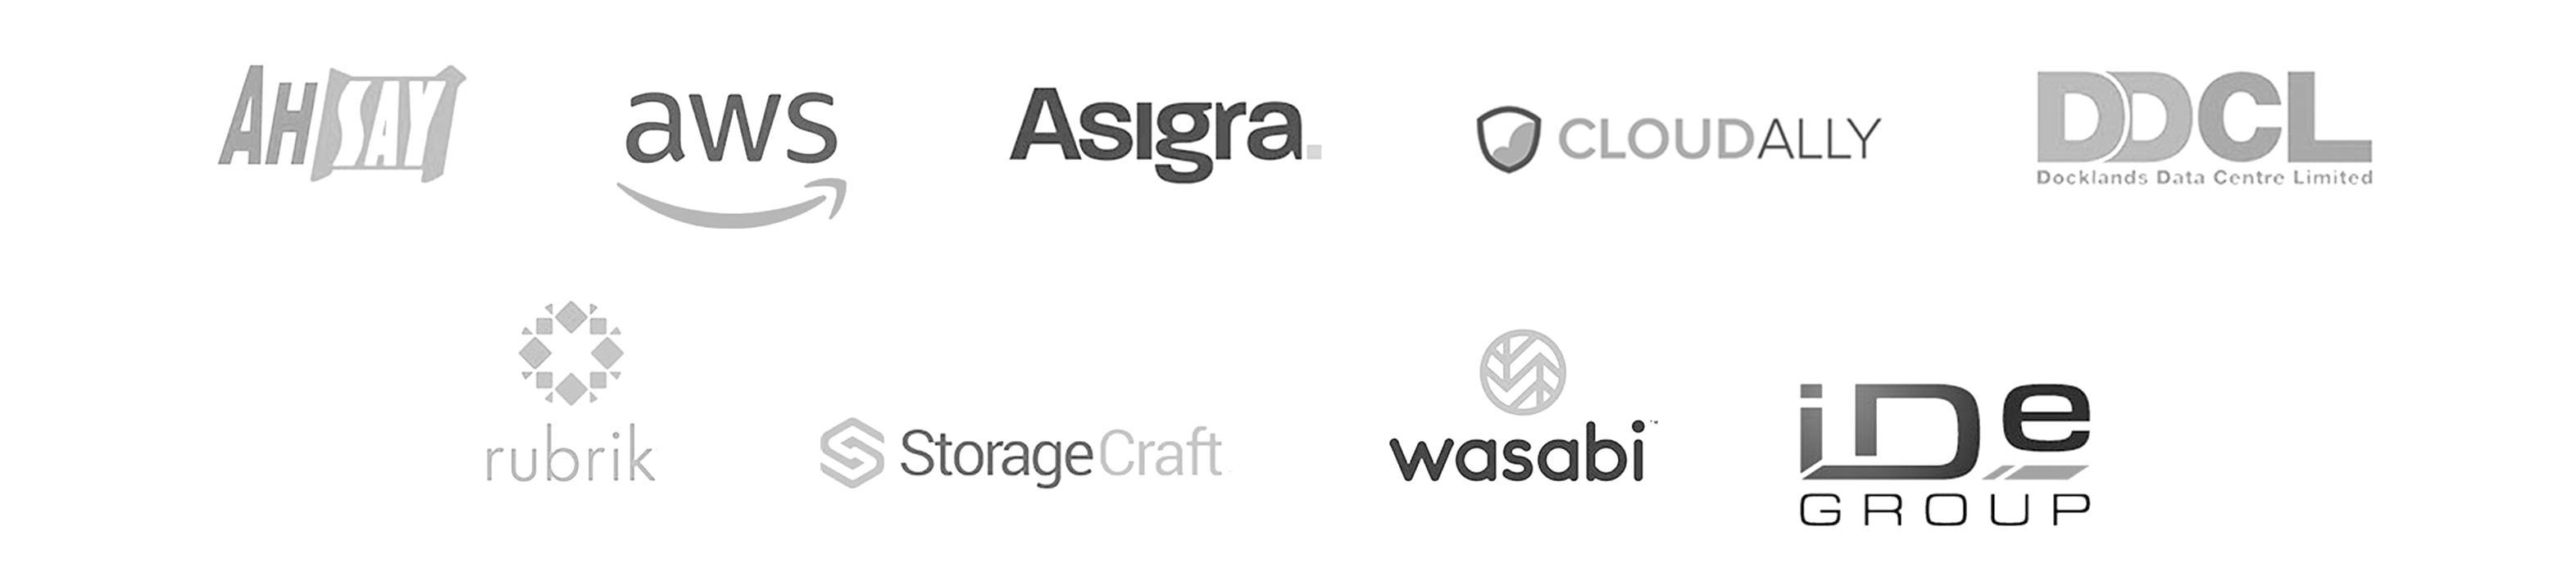 About Us_Technology Partners Logos